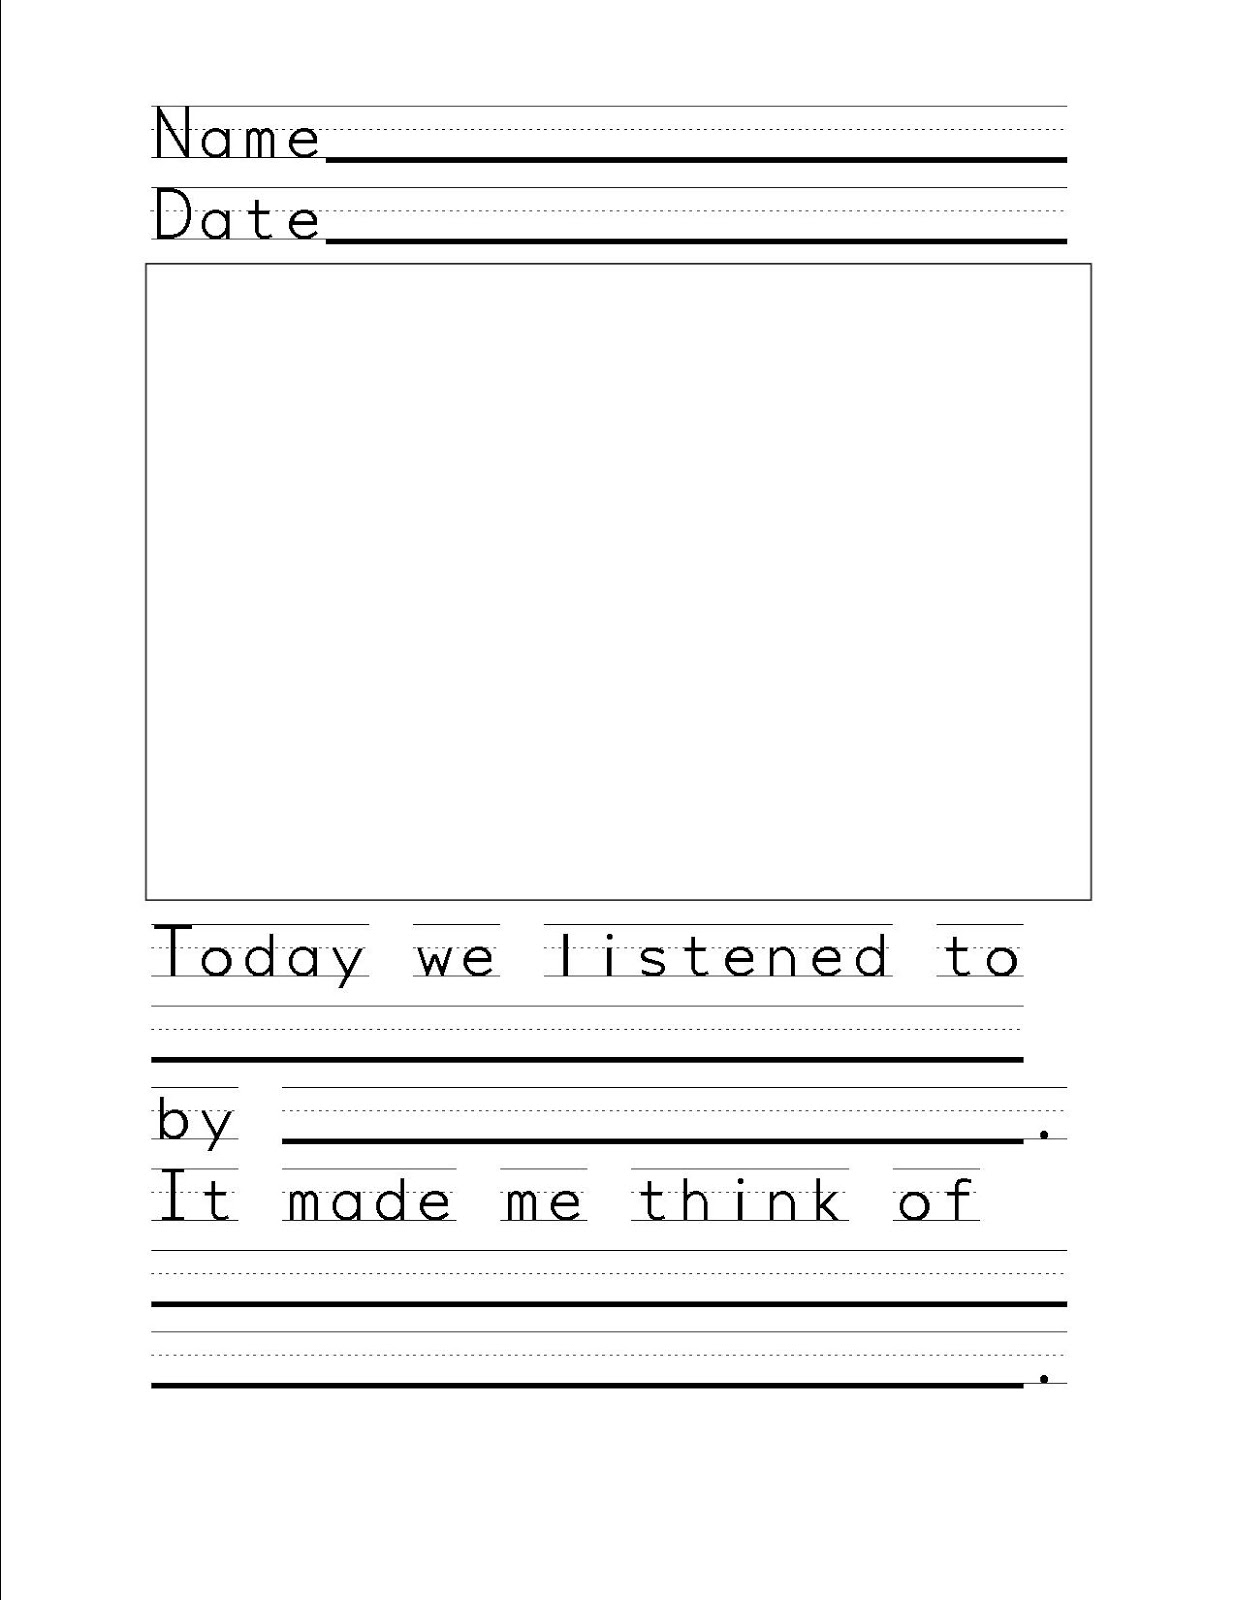 So La Mi Music Listening Response Sheet